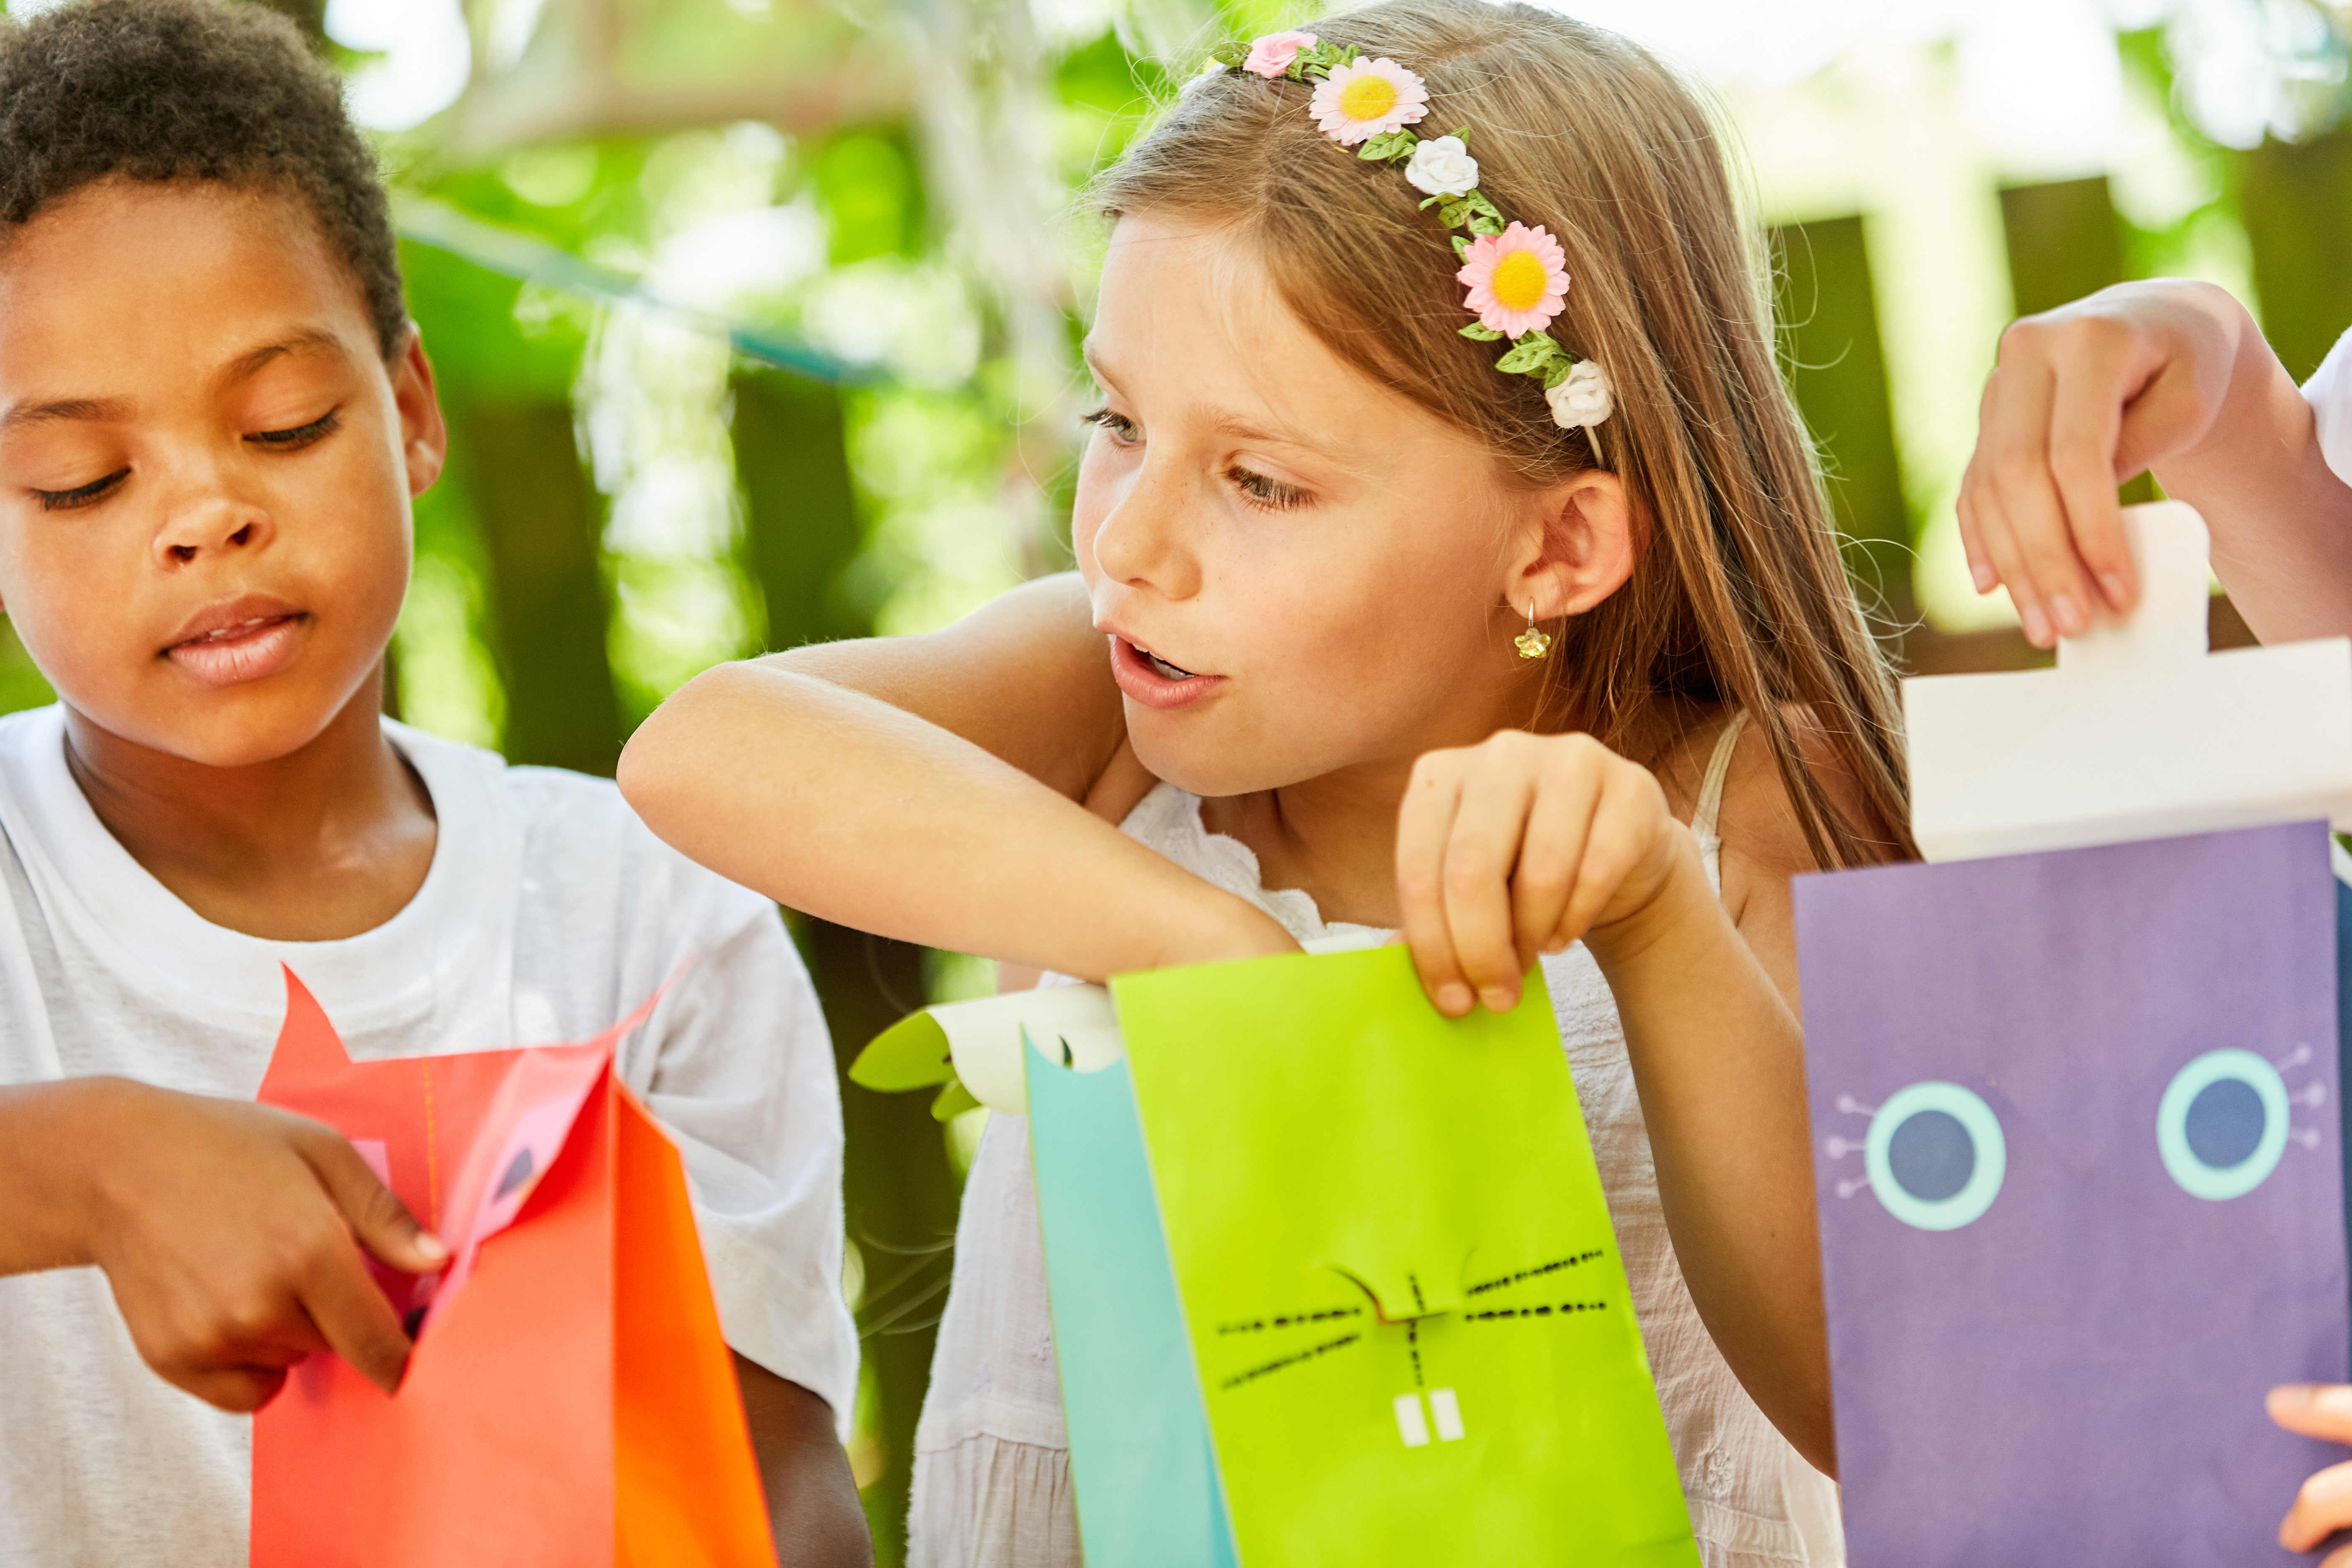 plastic-free party bags with children excitedly opening them